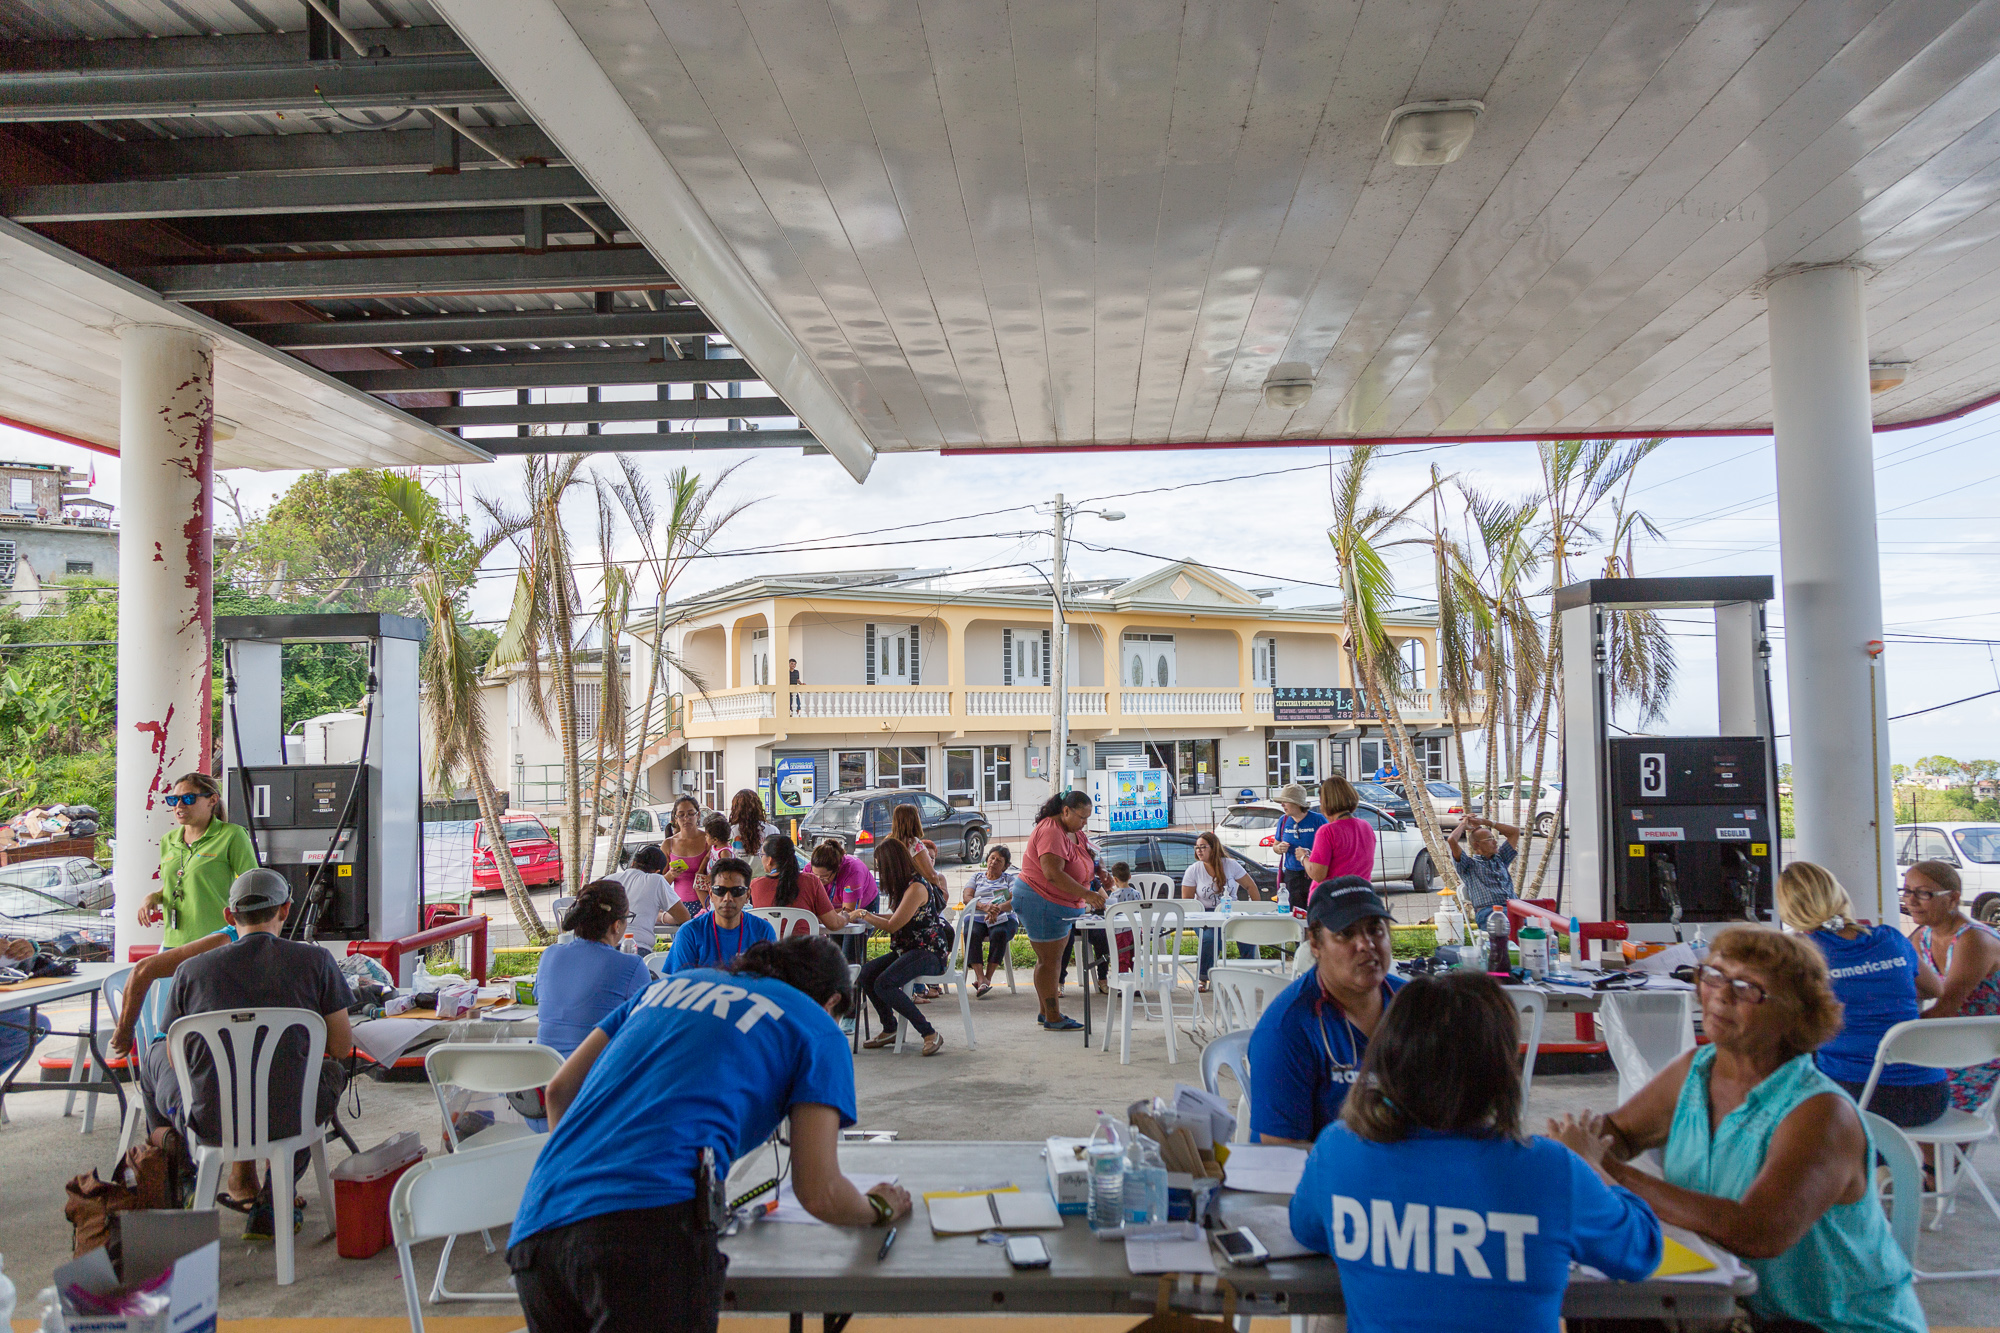 A temporary health clinic set up in a closed gas station damaged by hurricane Maria